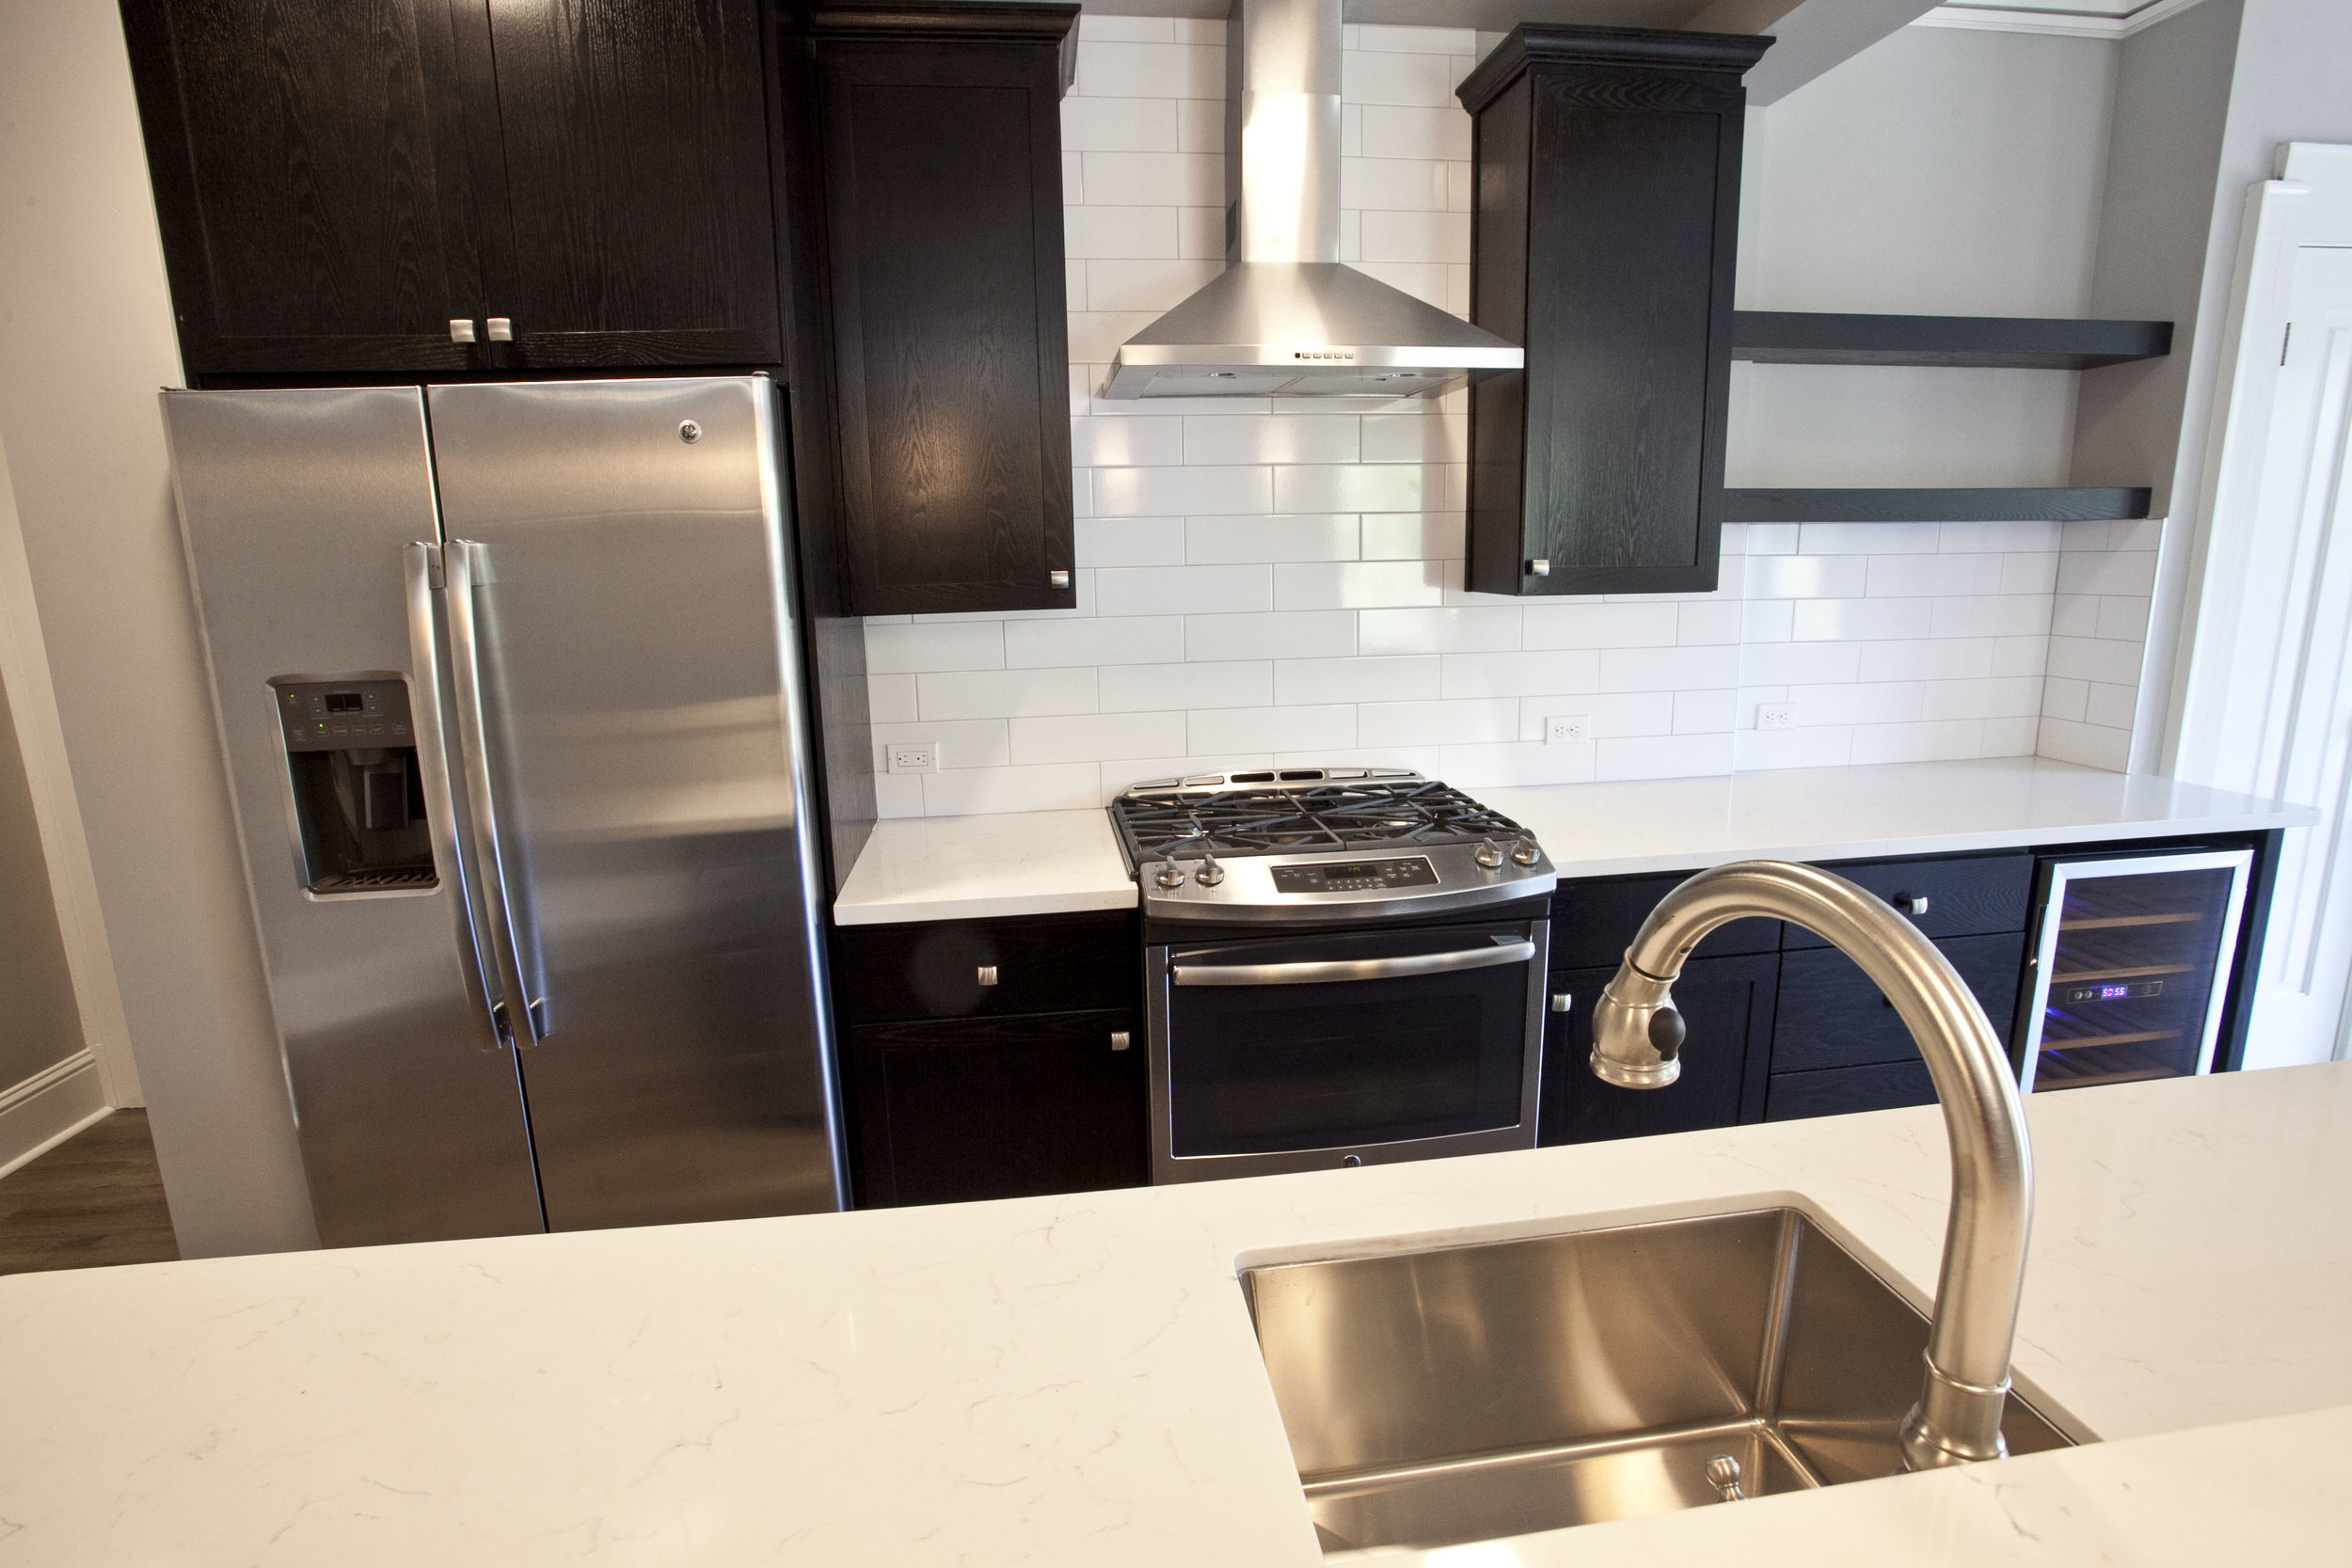 Deep Kitchen Sink with high end faucet - Quartz Counter Tops- Stainless Steel Appliances